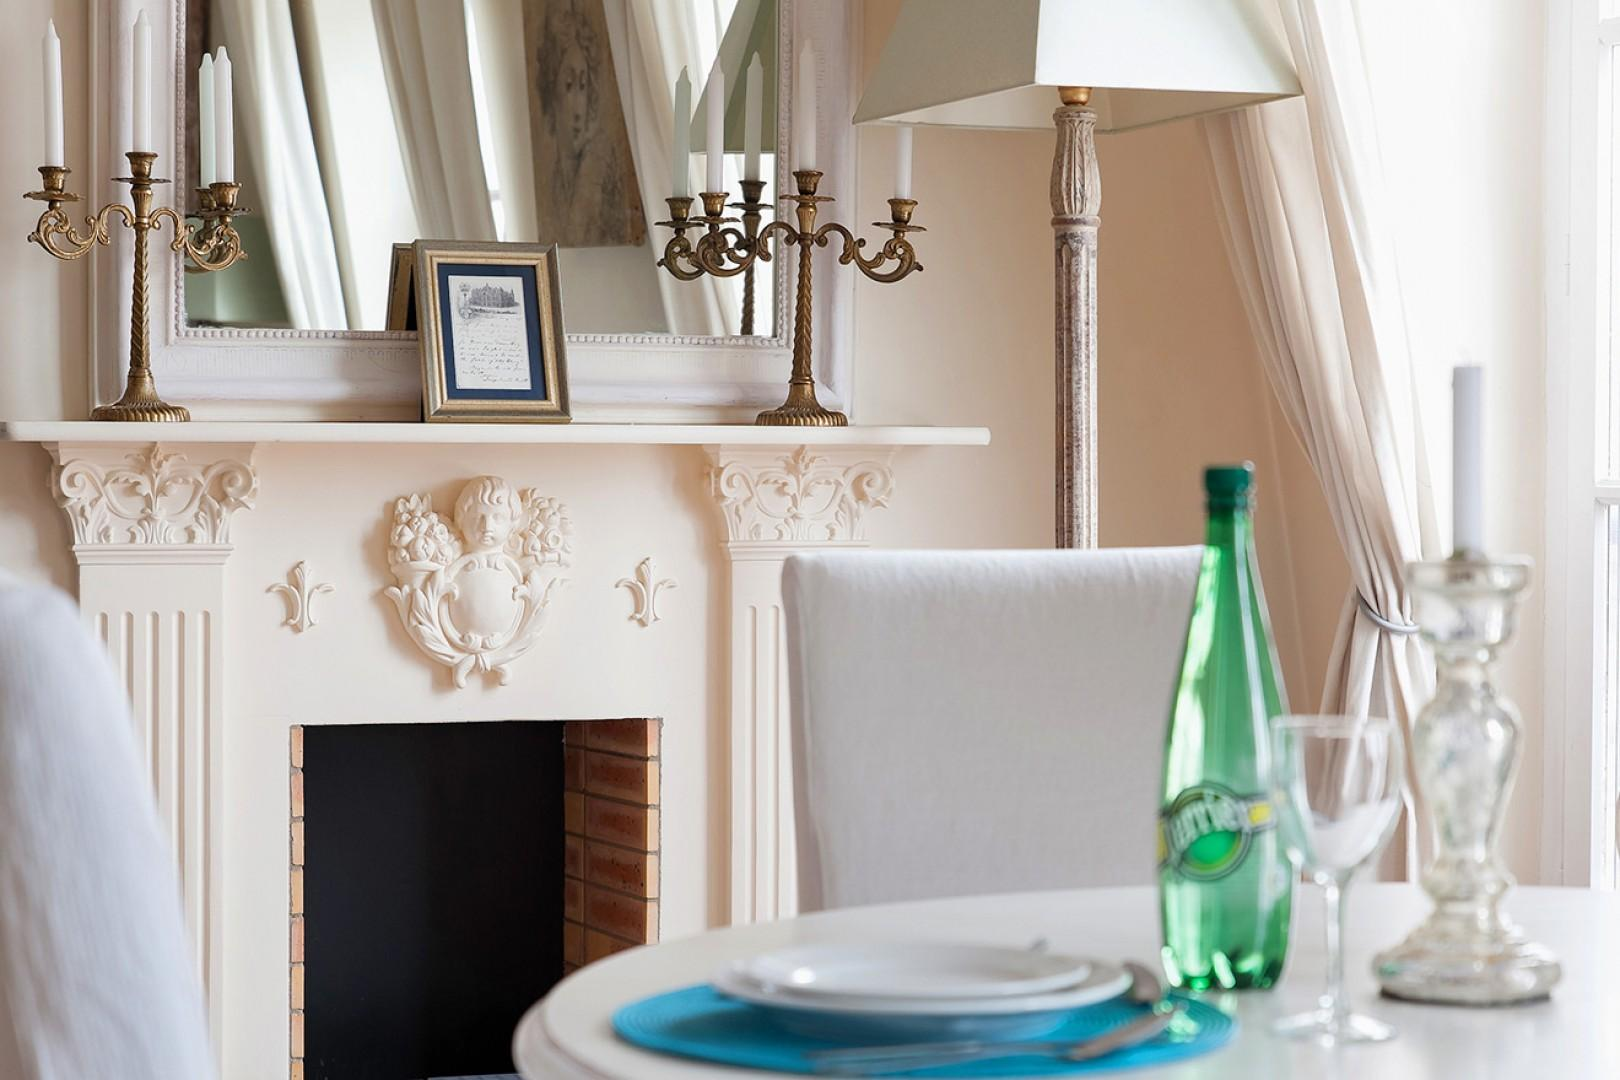 The intricate fireplace gives the rental a classic charm.